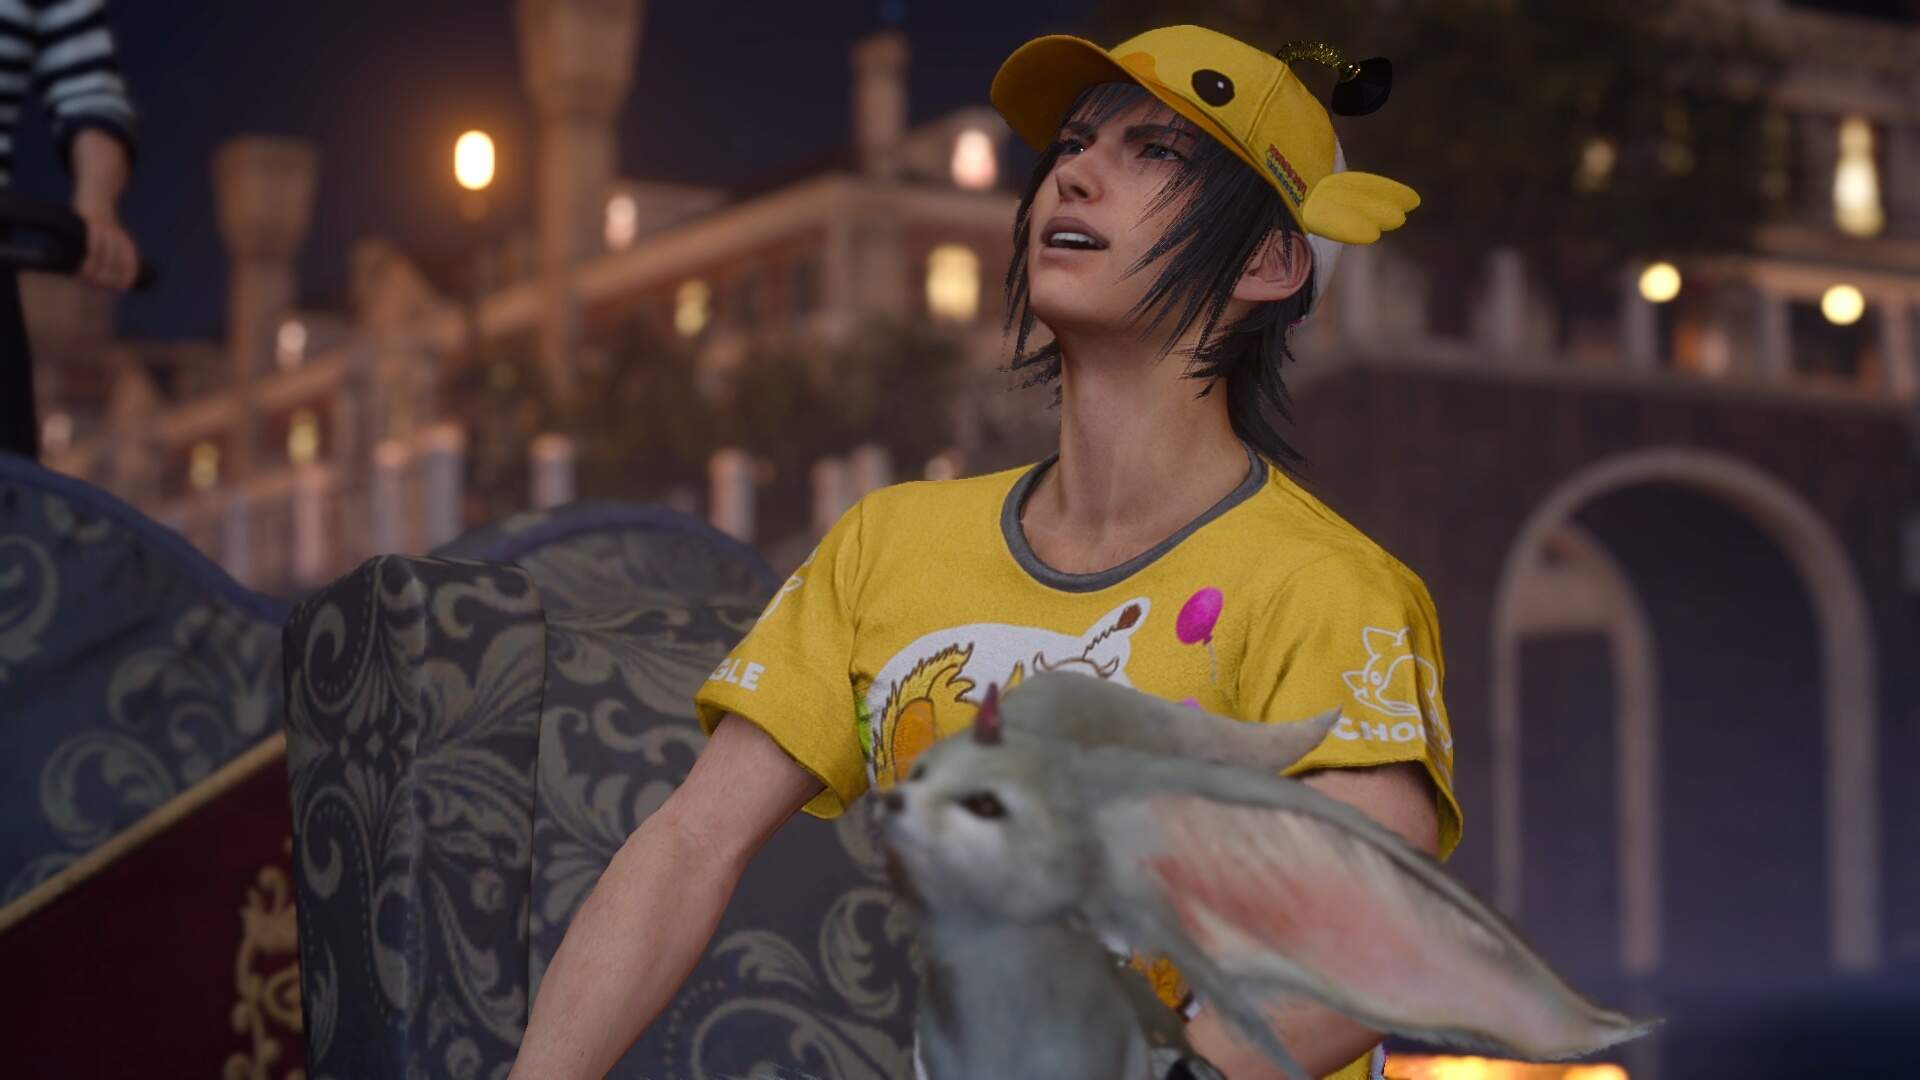 Final Fantasy 15 Walkthrough and Essential Tips